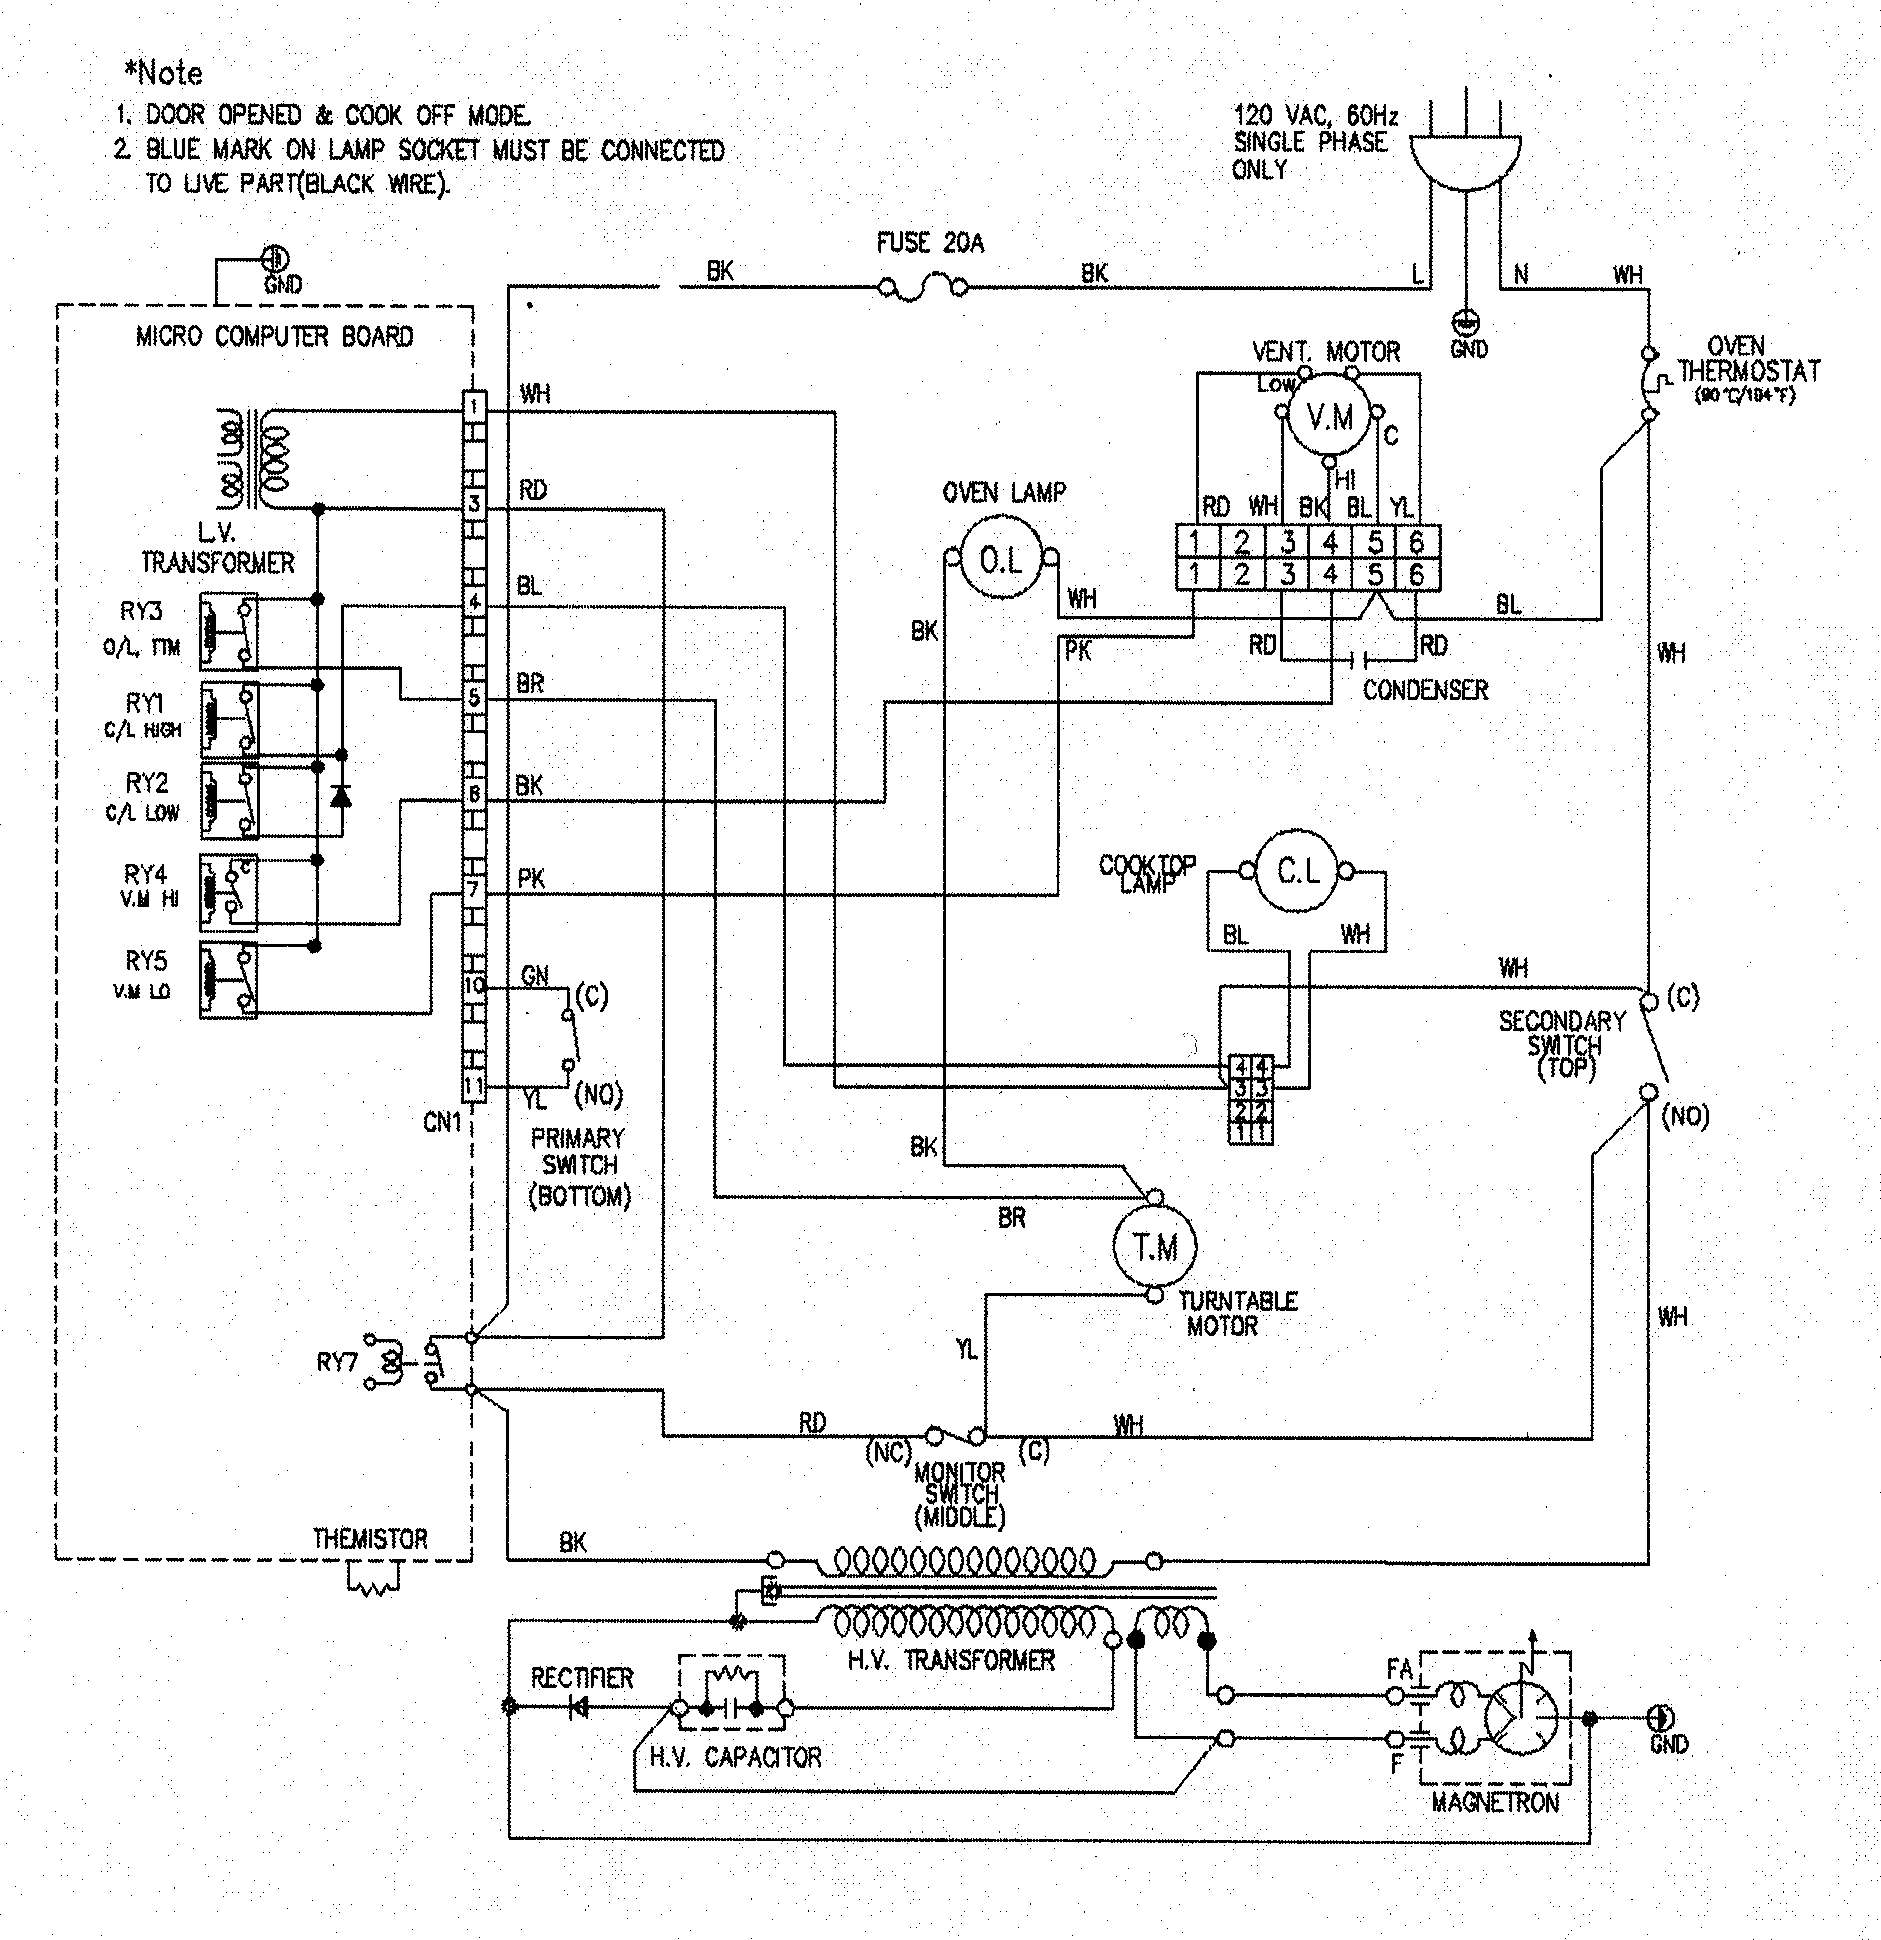 Diagram Sanyo Microwave Wiring Diagram Full Version Hd Quality Wiring Diagram Lonndiagram Media90 It